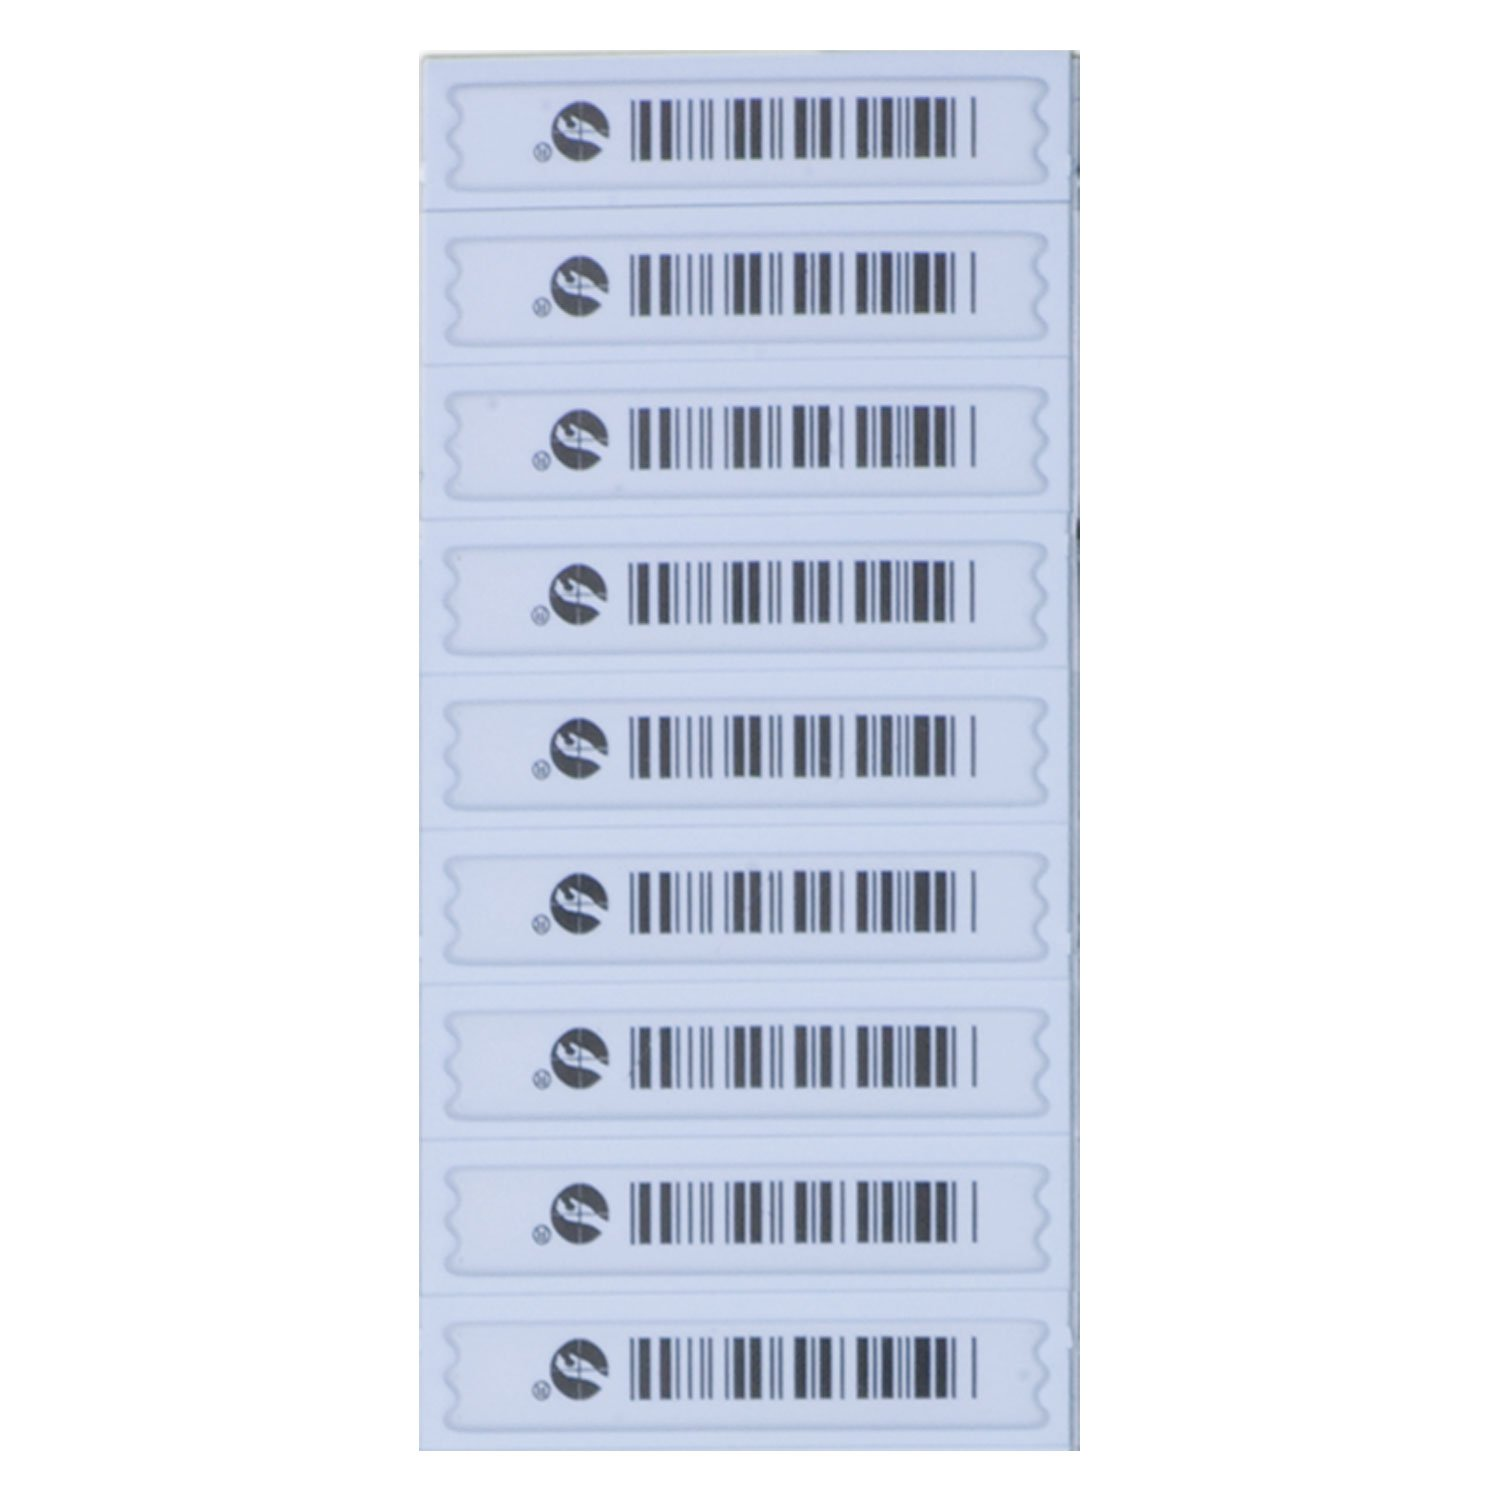 Sensormatic/Tyco Brand UltraStrip III, ZLDRSING1, Fake Barcode, 1 Box of 5K